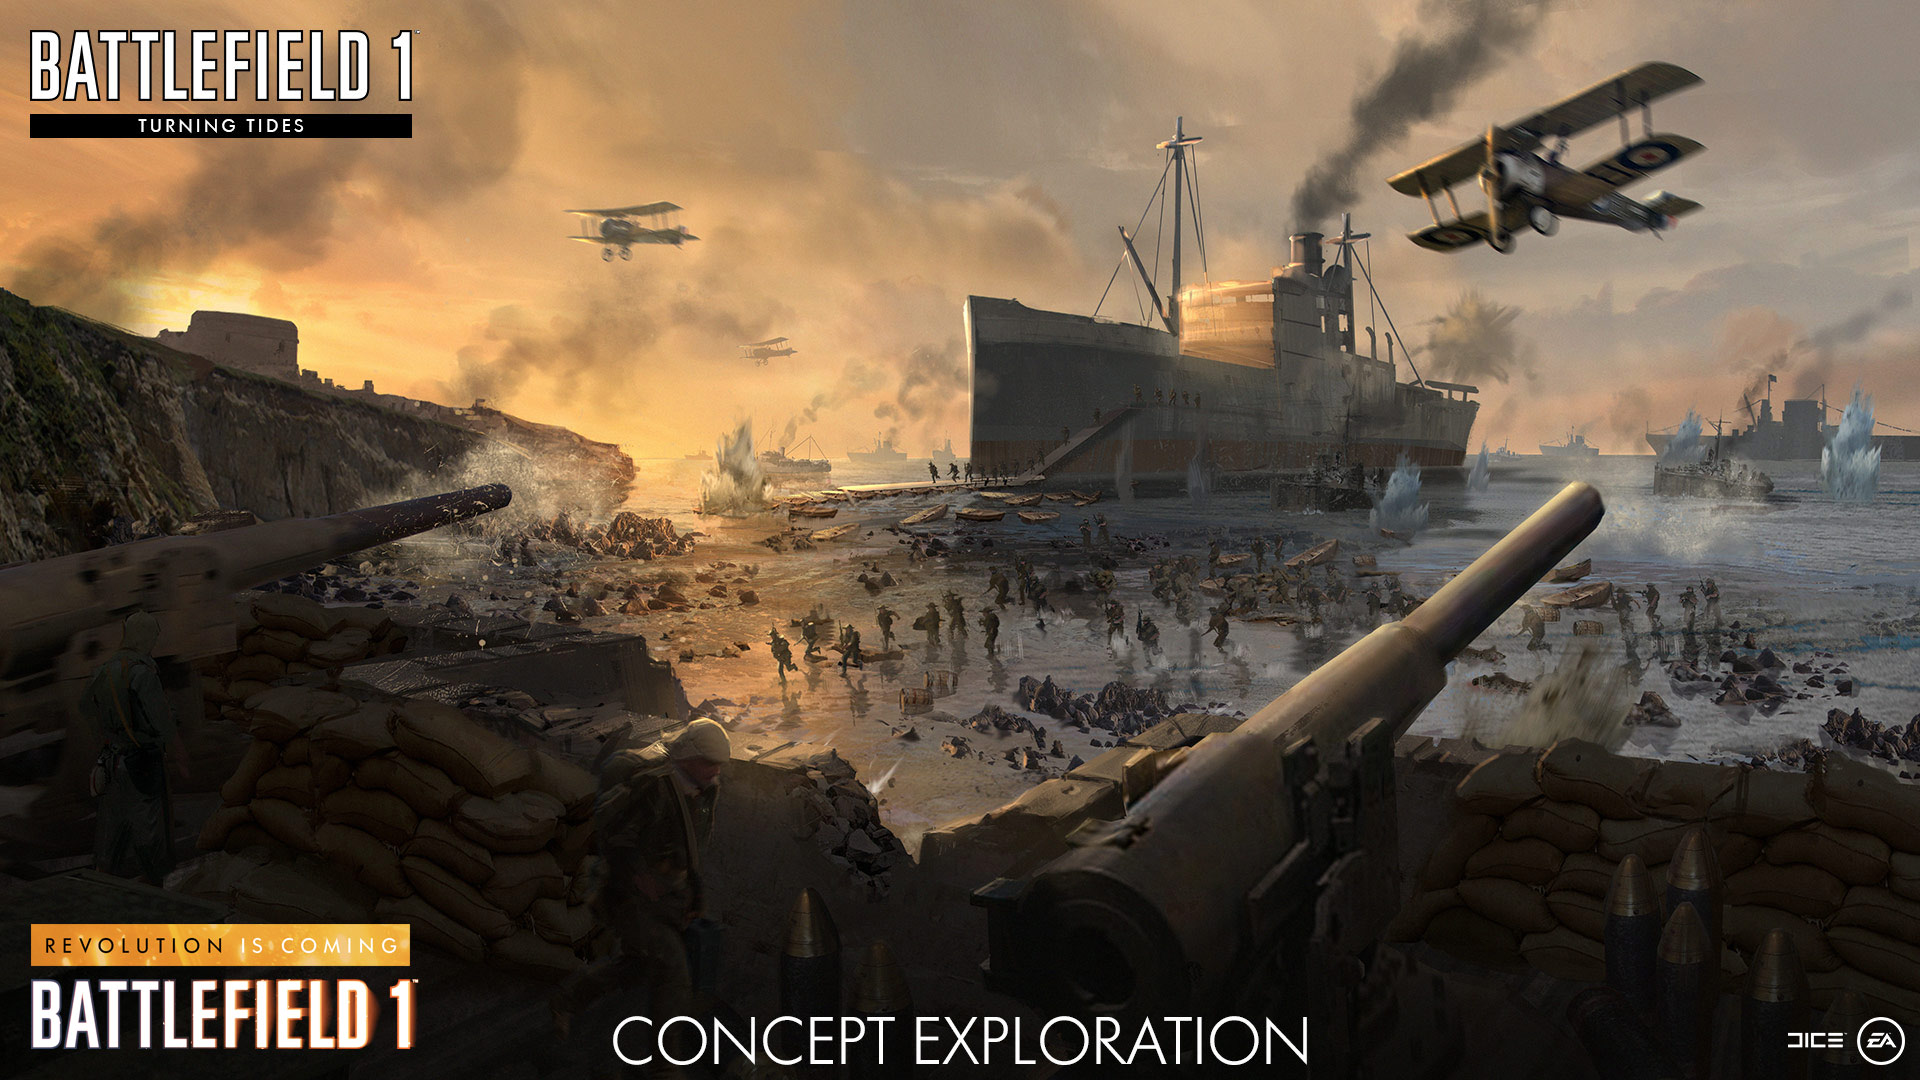 The Road Ahead for Battlefield 1: Revolution is Coming